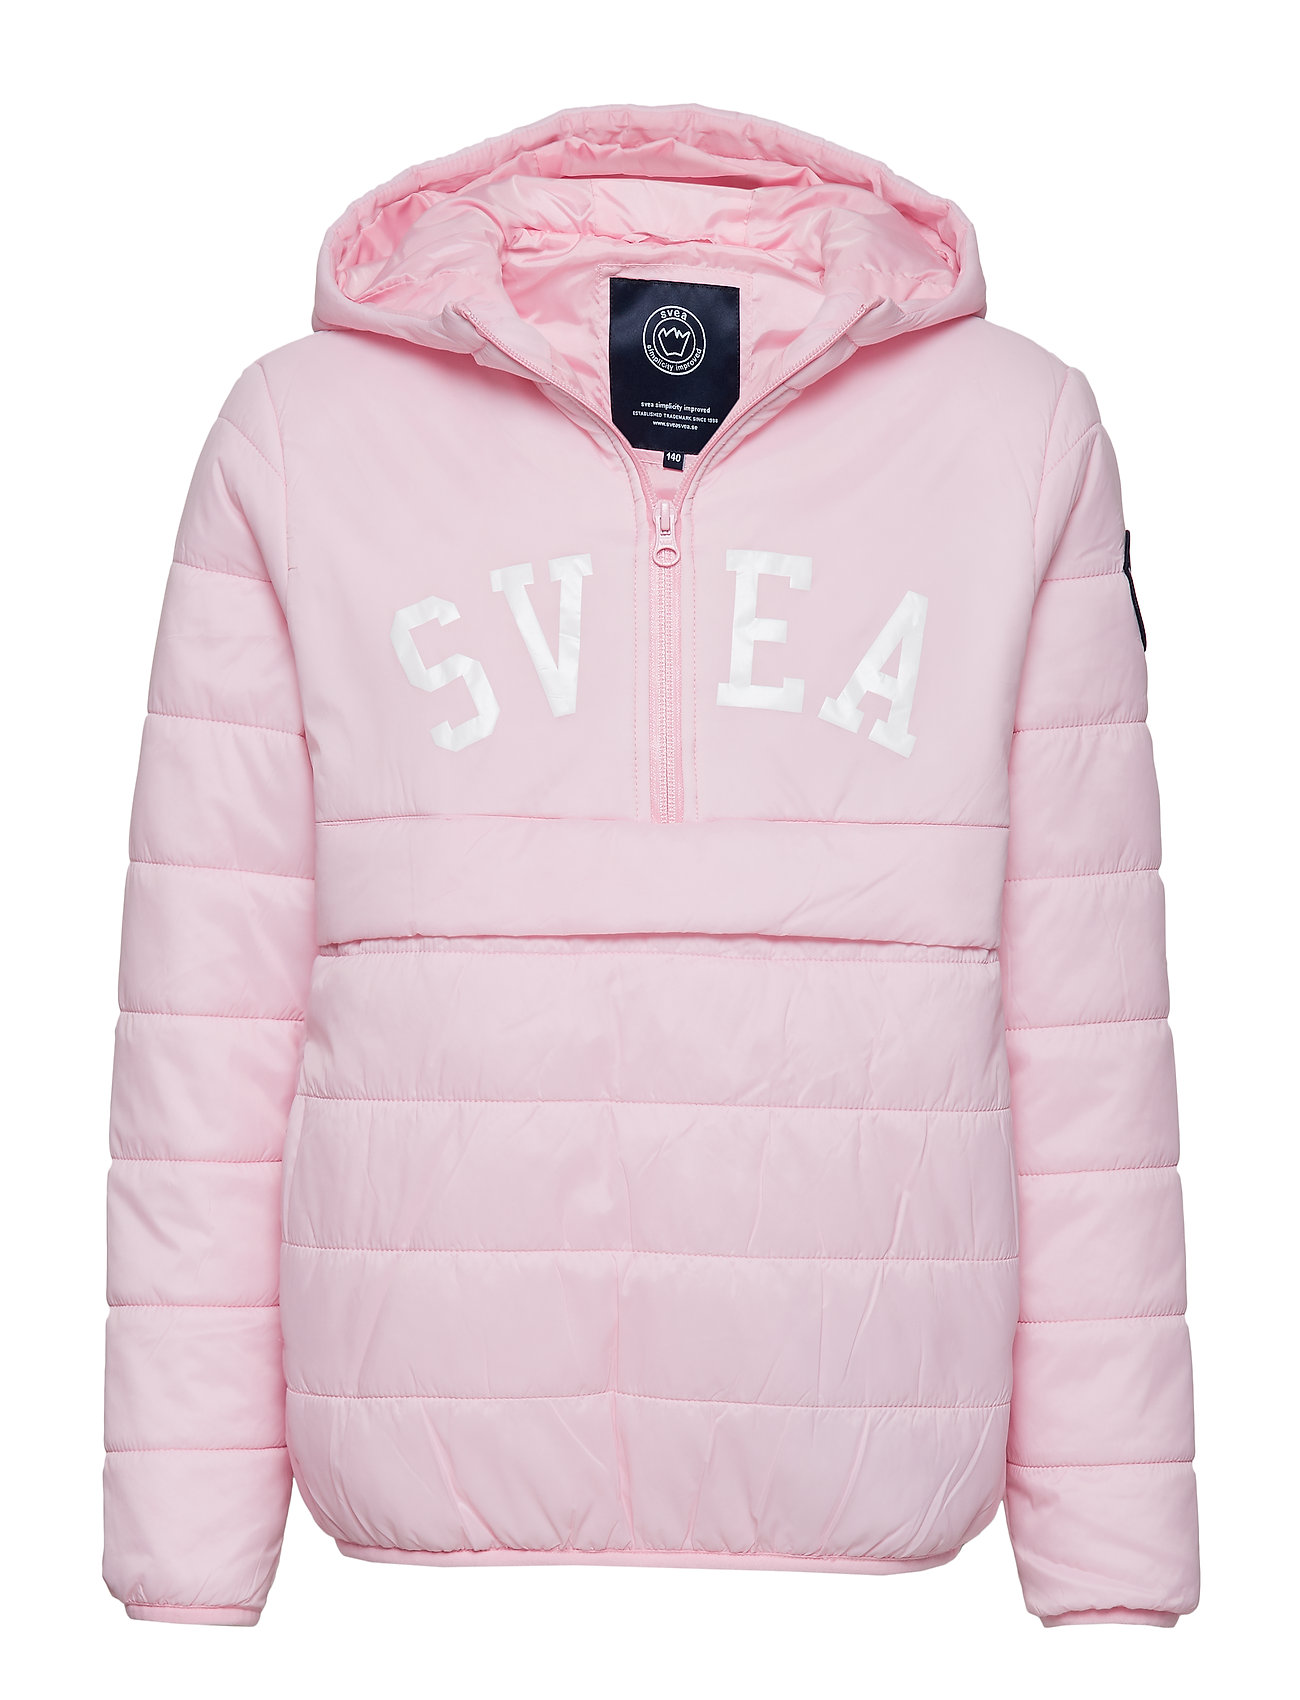 Svea Buffalo JR Anorak - LIGHT PINK